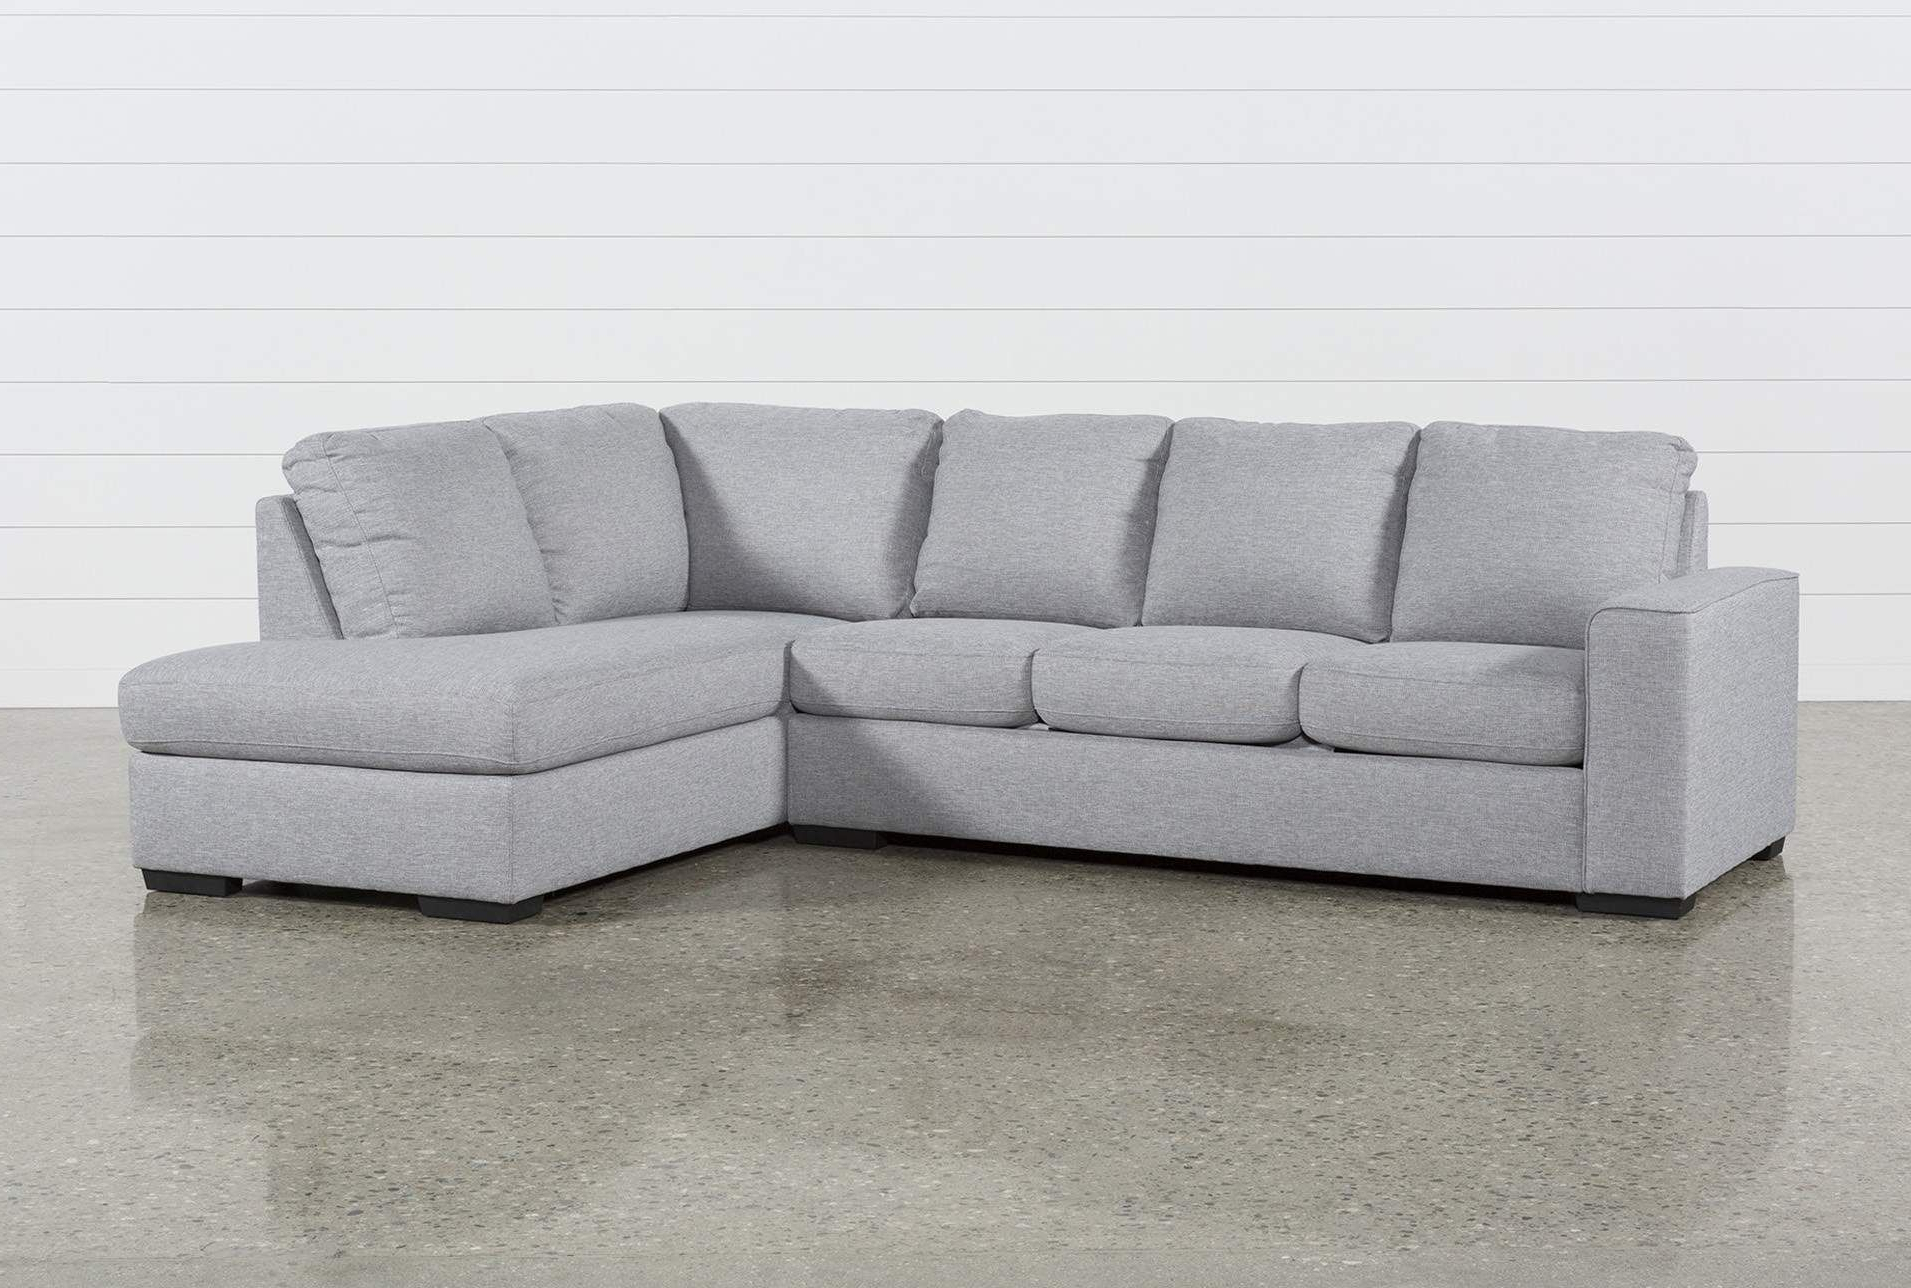 Lucy Grey 2 Piece Sectional Sofa With Right Arm Facing In Most Up To Date Monet Right Facing Sectional Sofas (View 15 of 20)